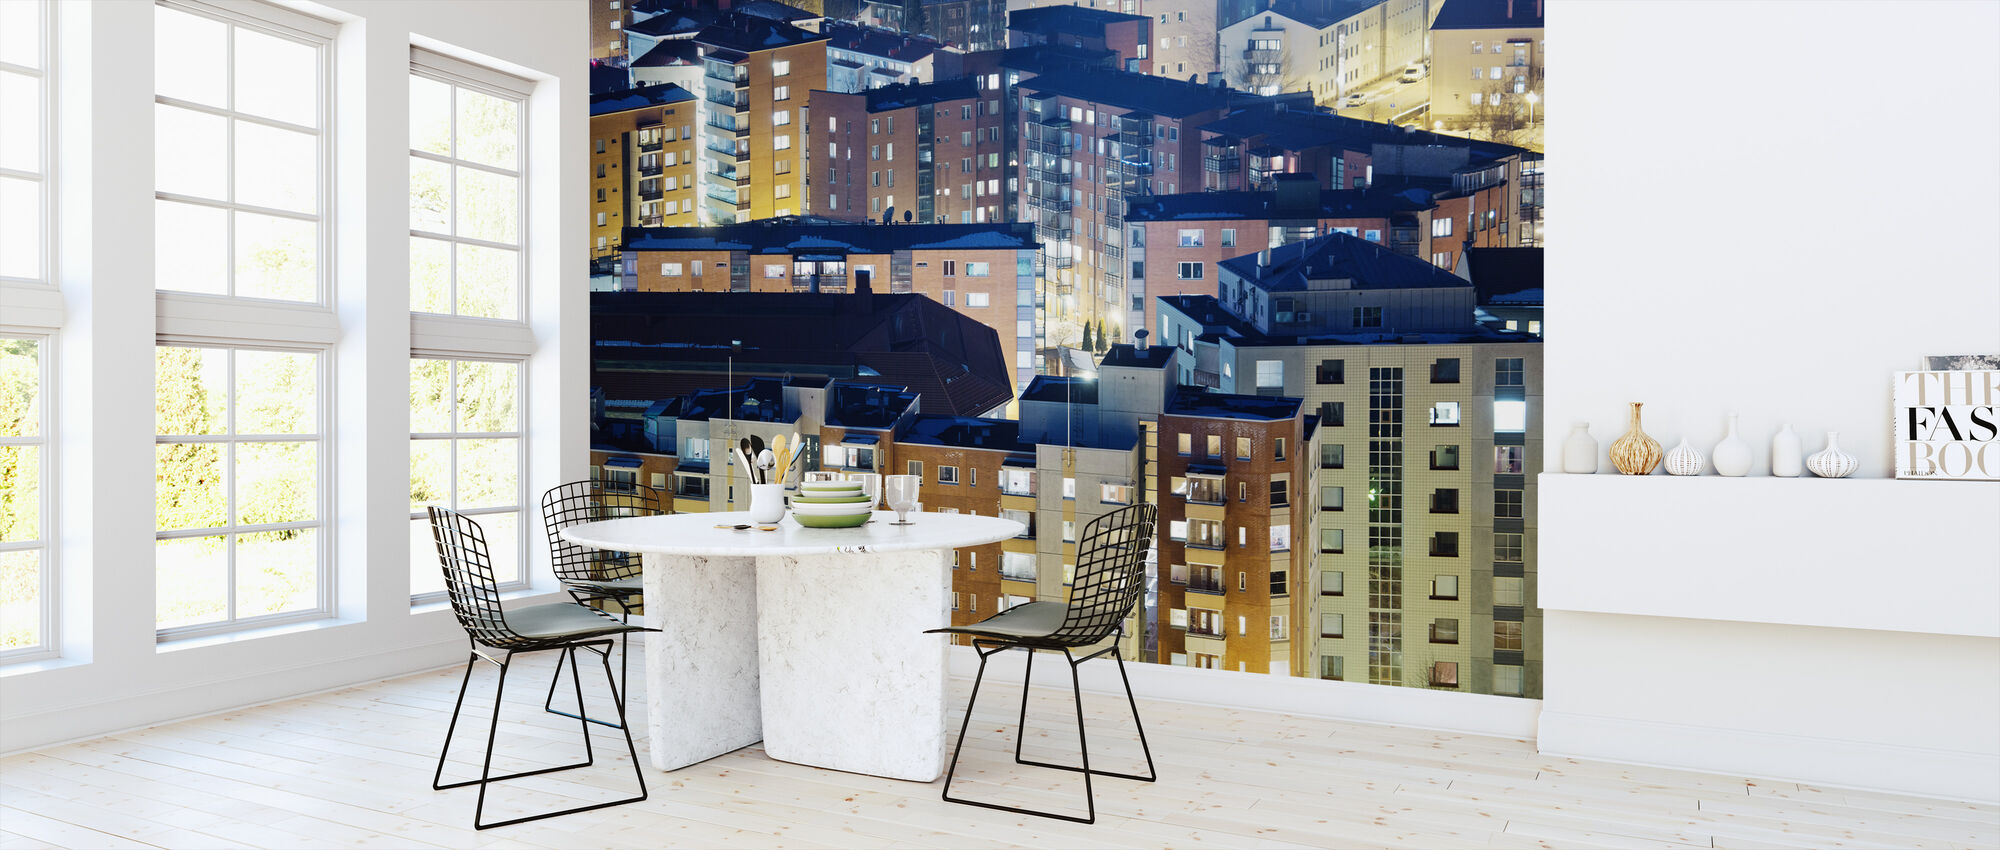 Roofs of Finland - Wallpaper - Kitchen